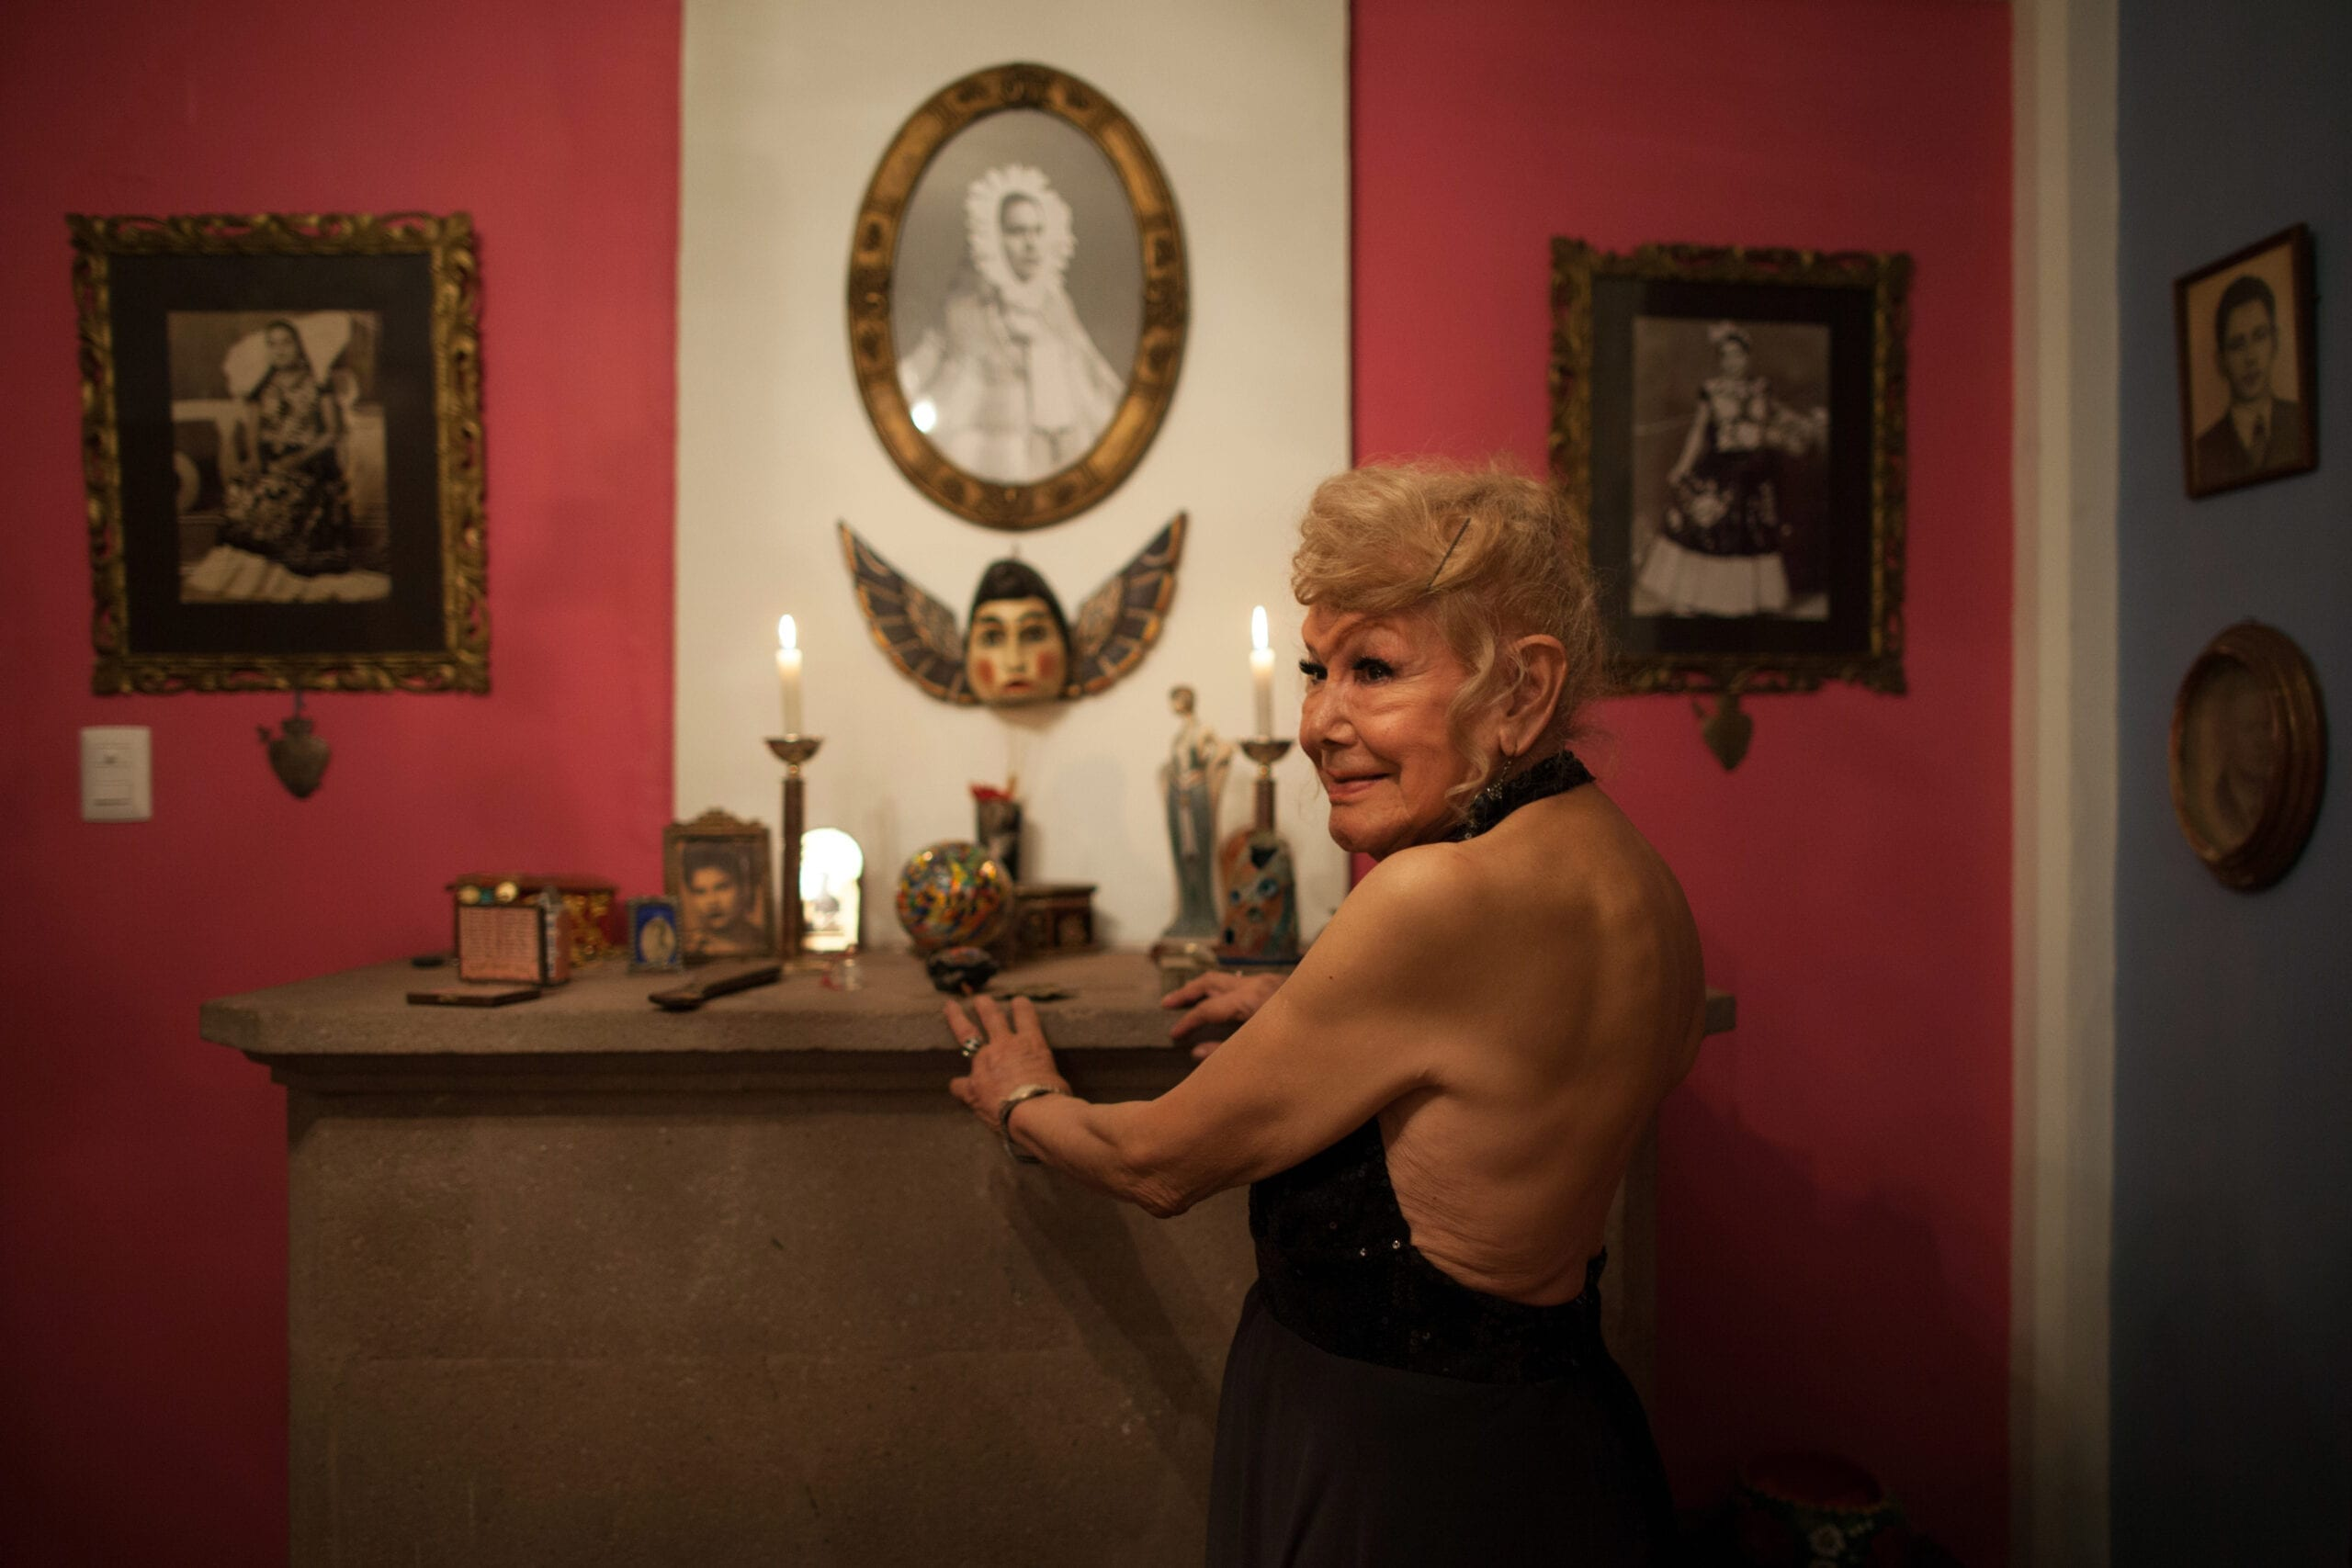 Eighty year old Mexican transgender woman creates a shelter for elderly gays